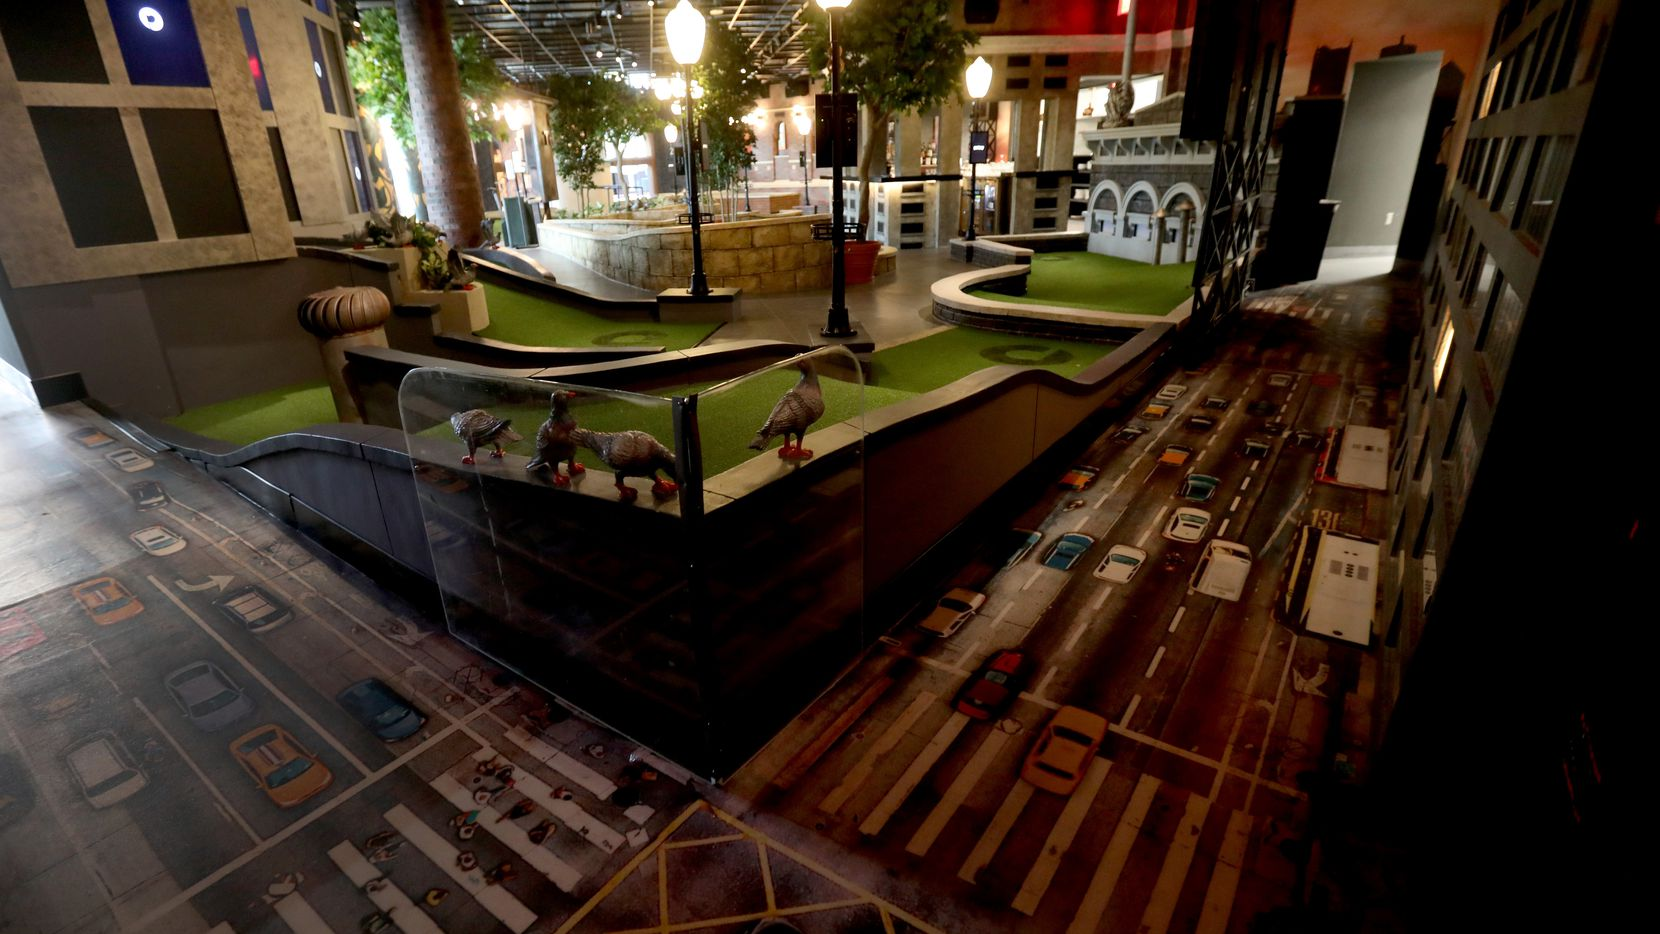 A hole in the Rooftop room at Puttery, a new indoor mini golf and entertainment concept in The Colony, on Aug. 30, 2021. (Anja Schlein/Special Contributor)